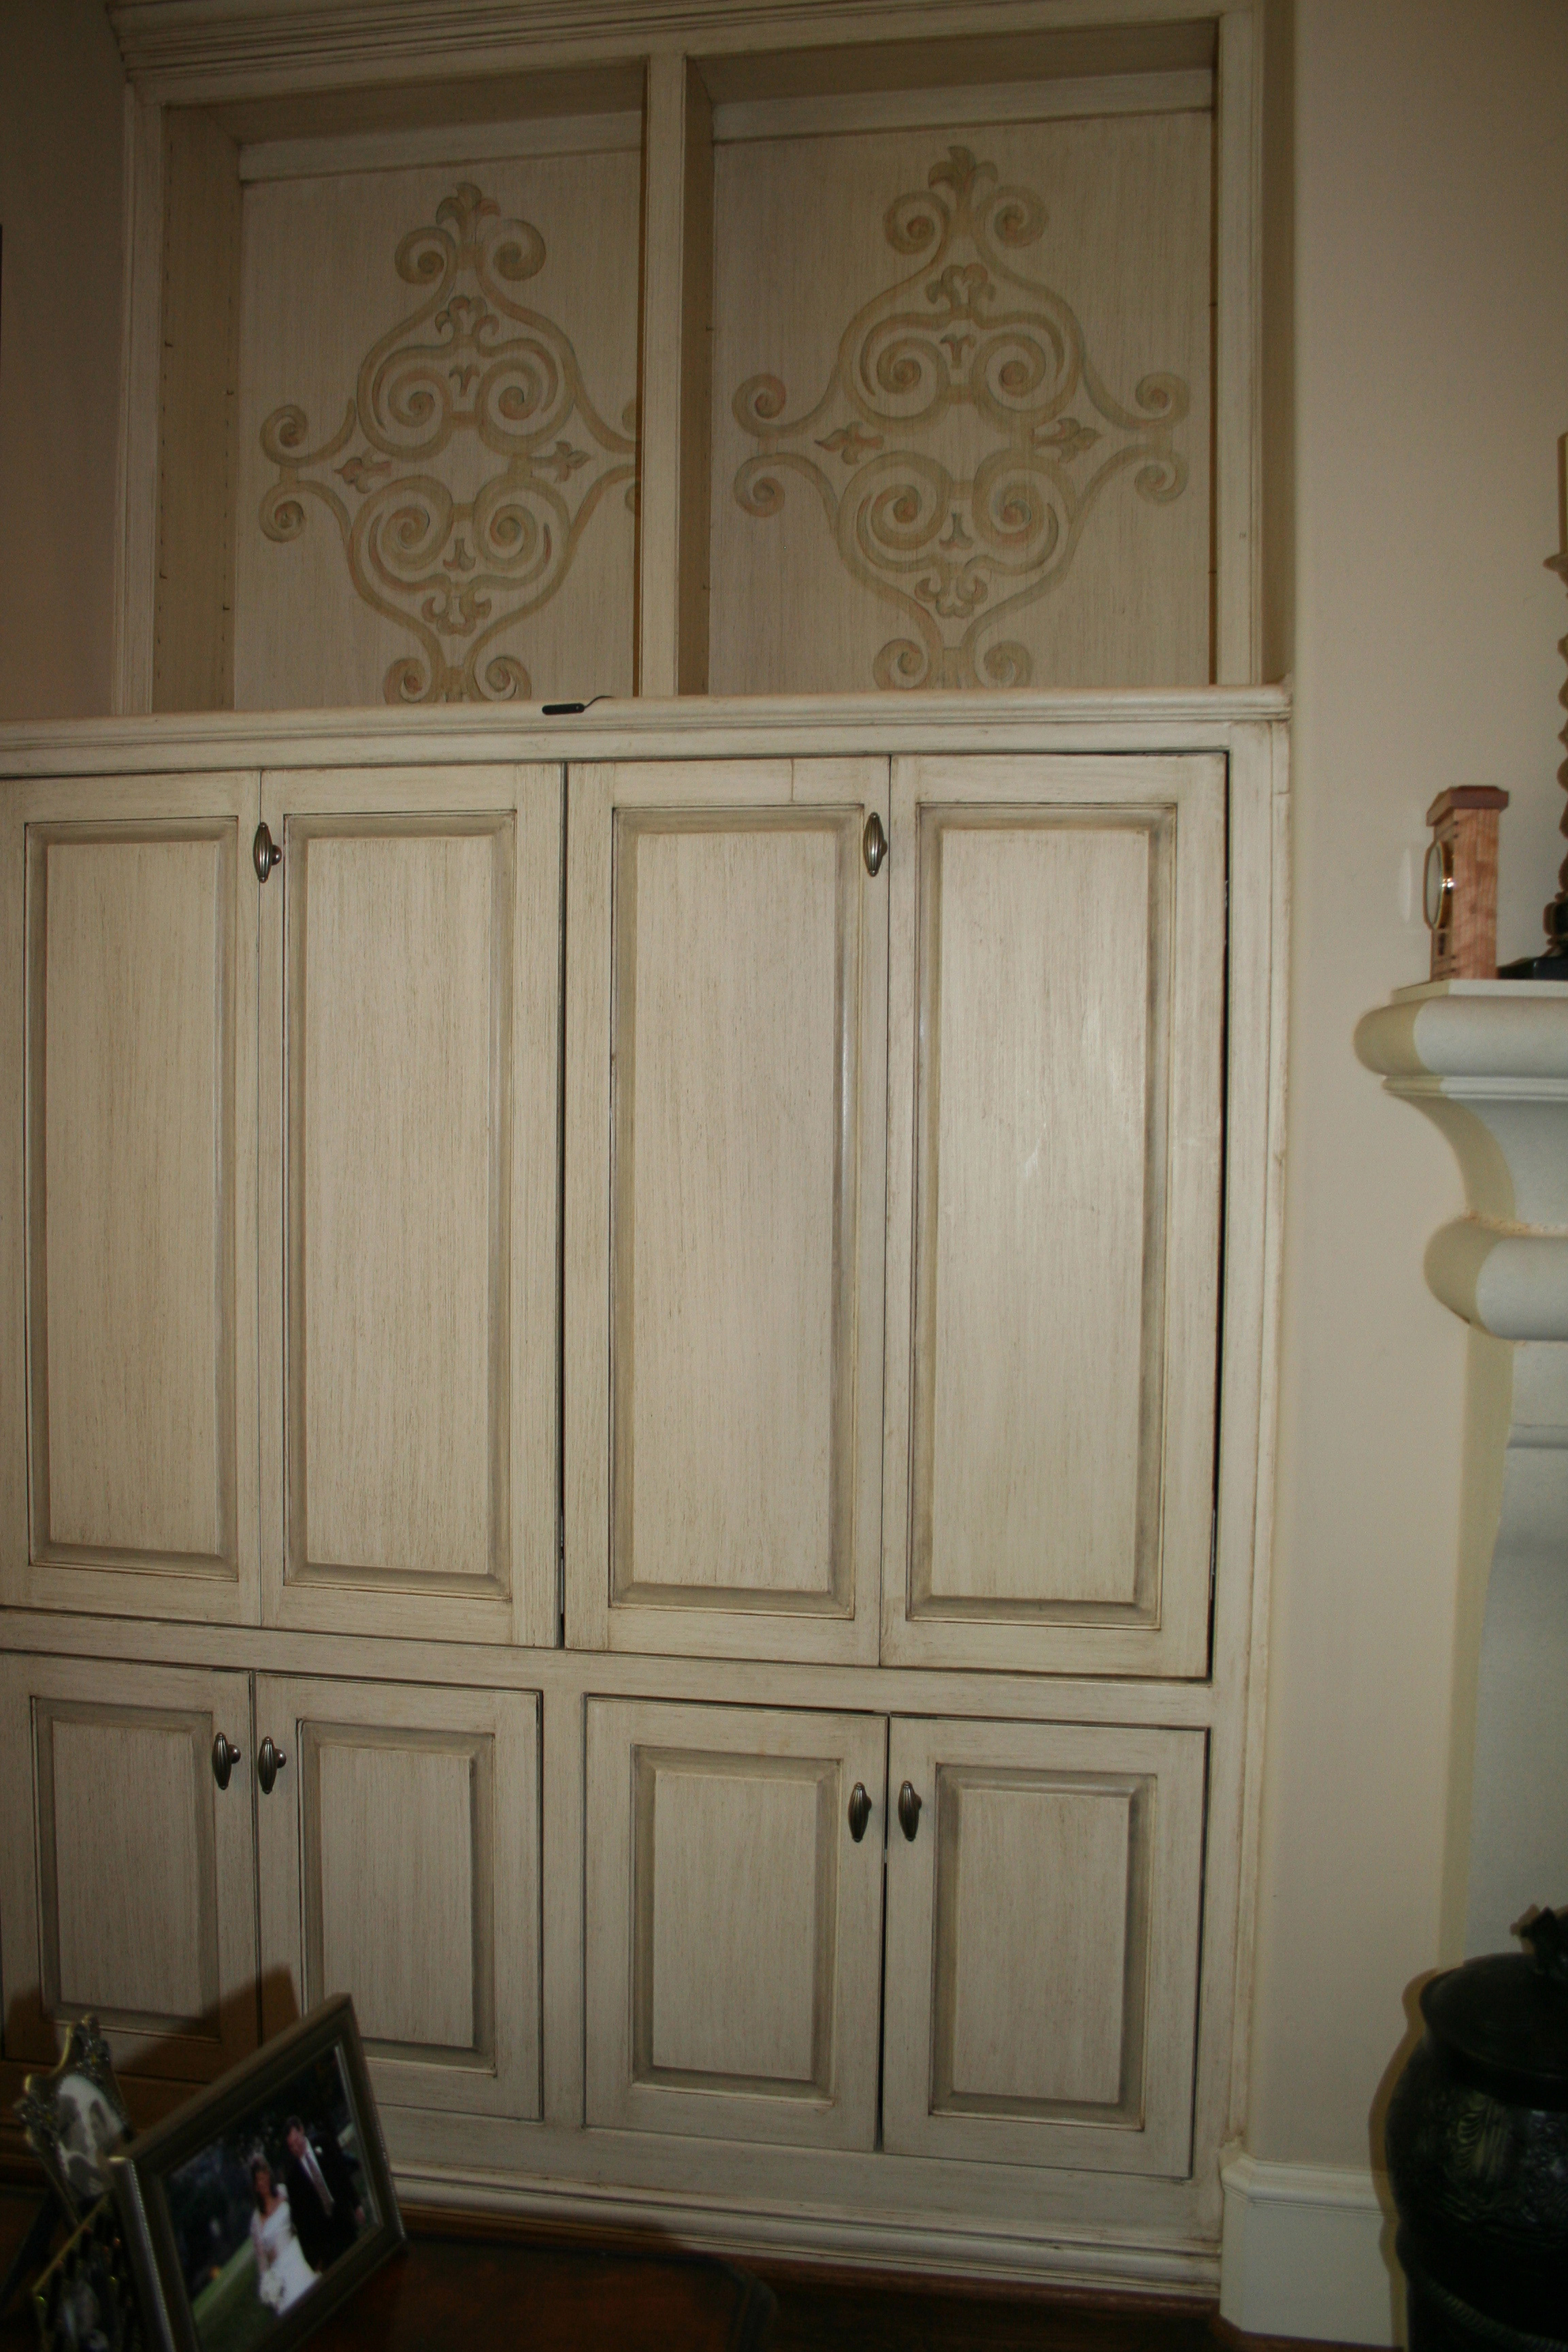 Custom hand painted patterns on cabinet doors